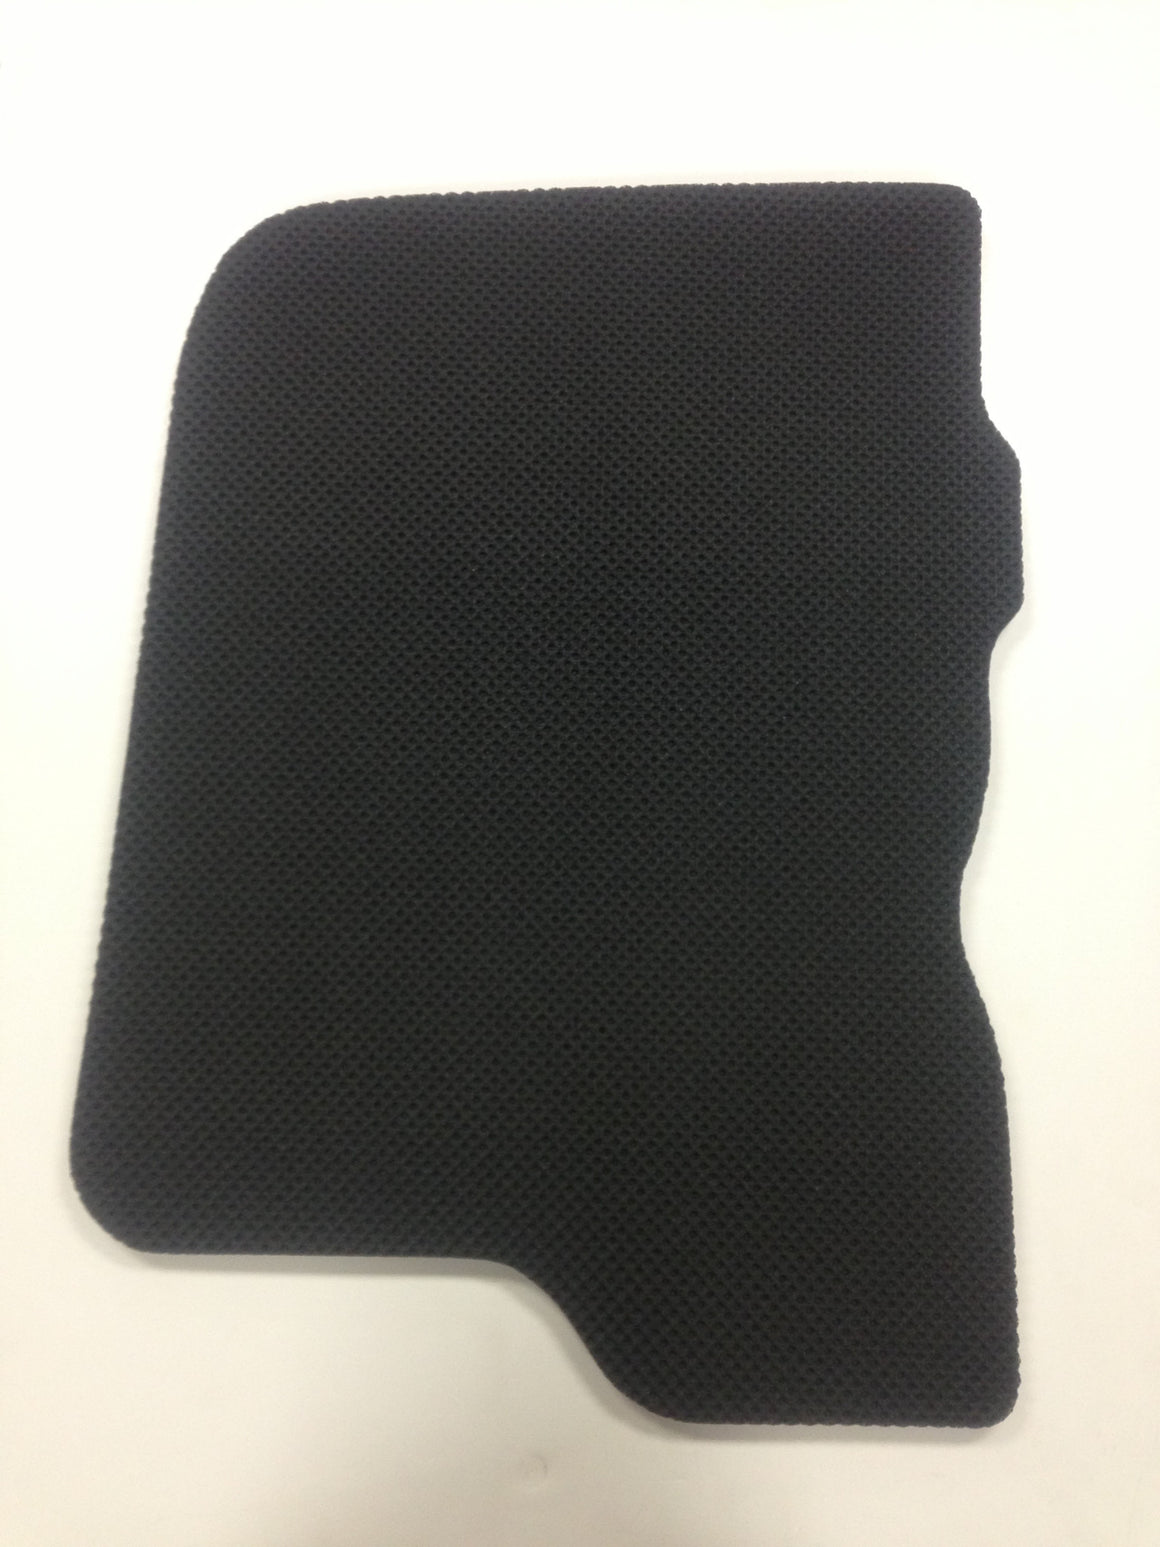 (New) 924/944 Right Side Hood Sound Pad - 1976-91